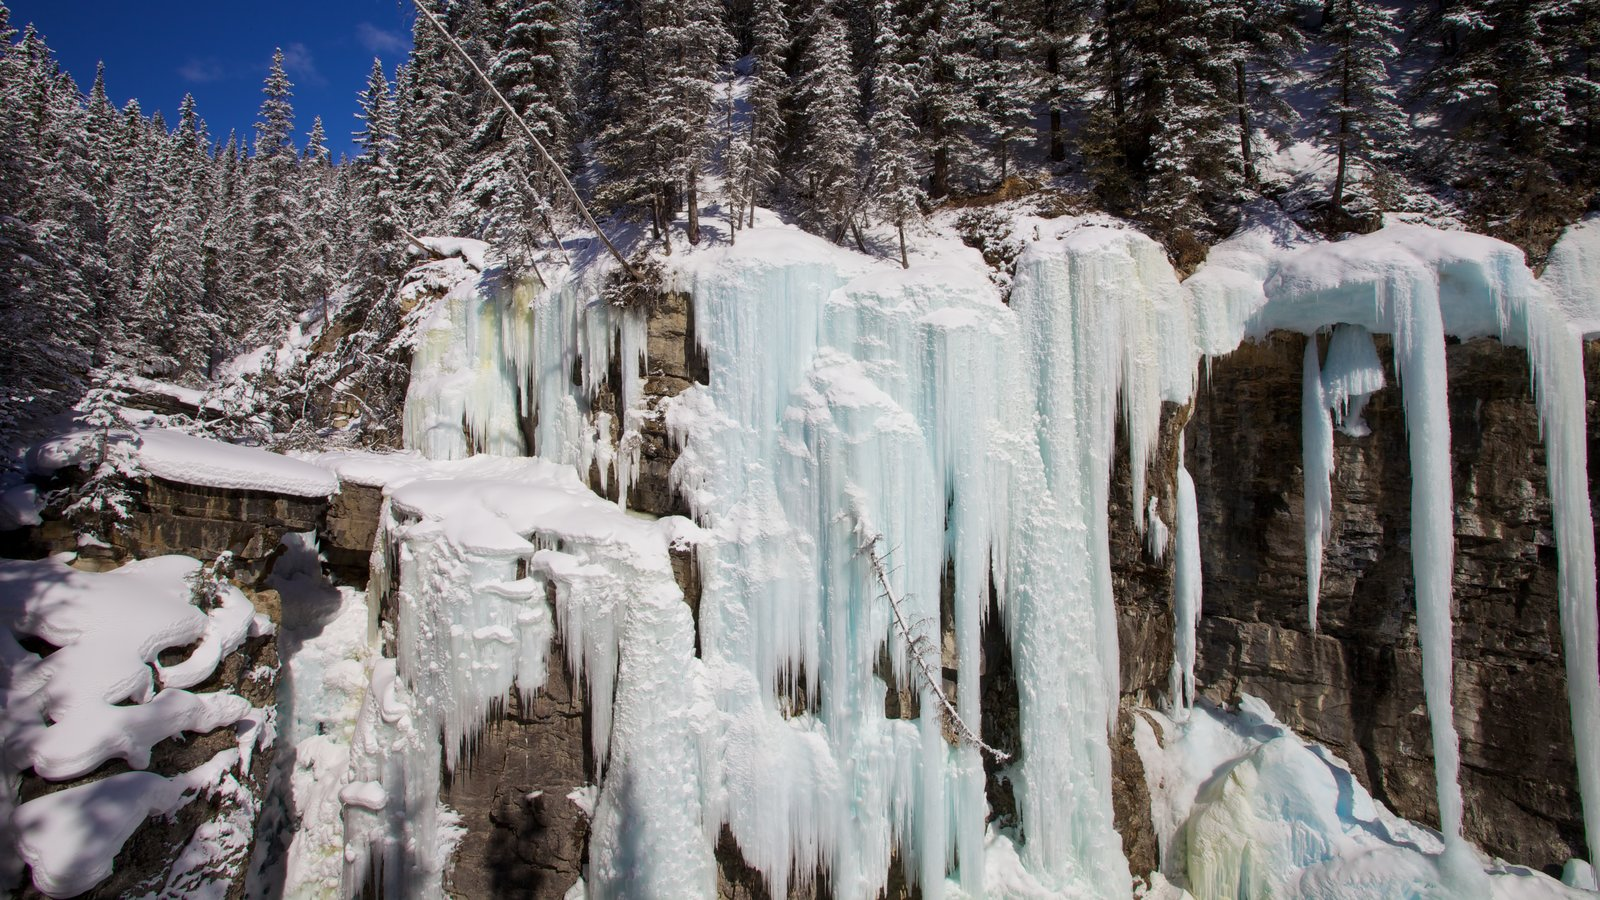 Johnston Canyon which includes snow, mountains and landscape views